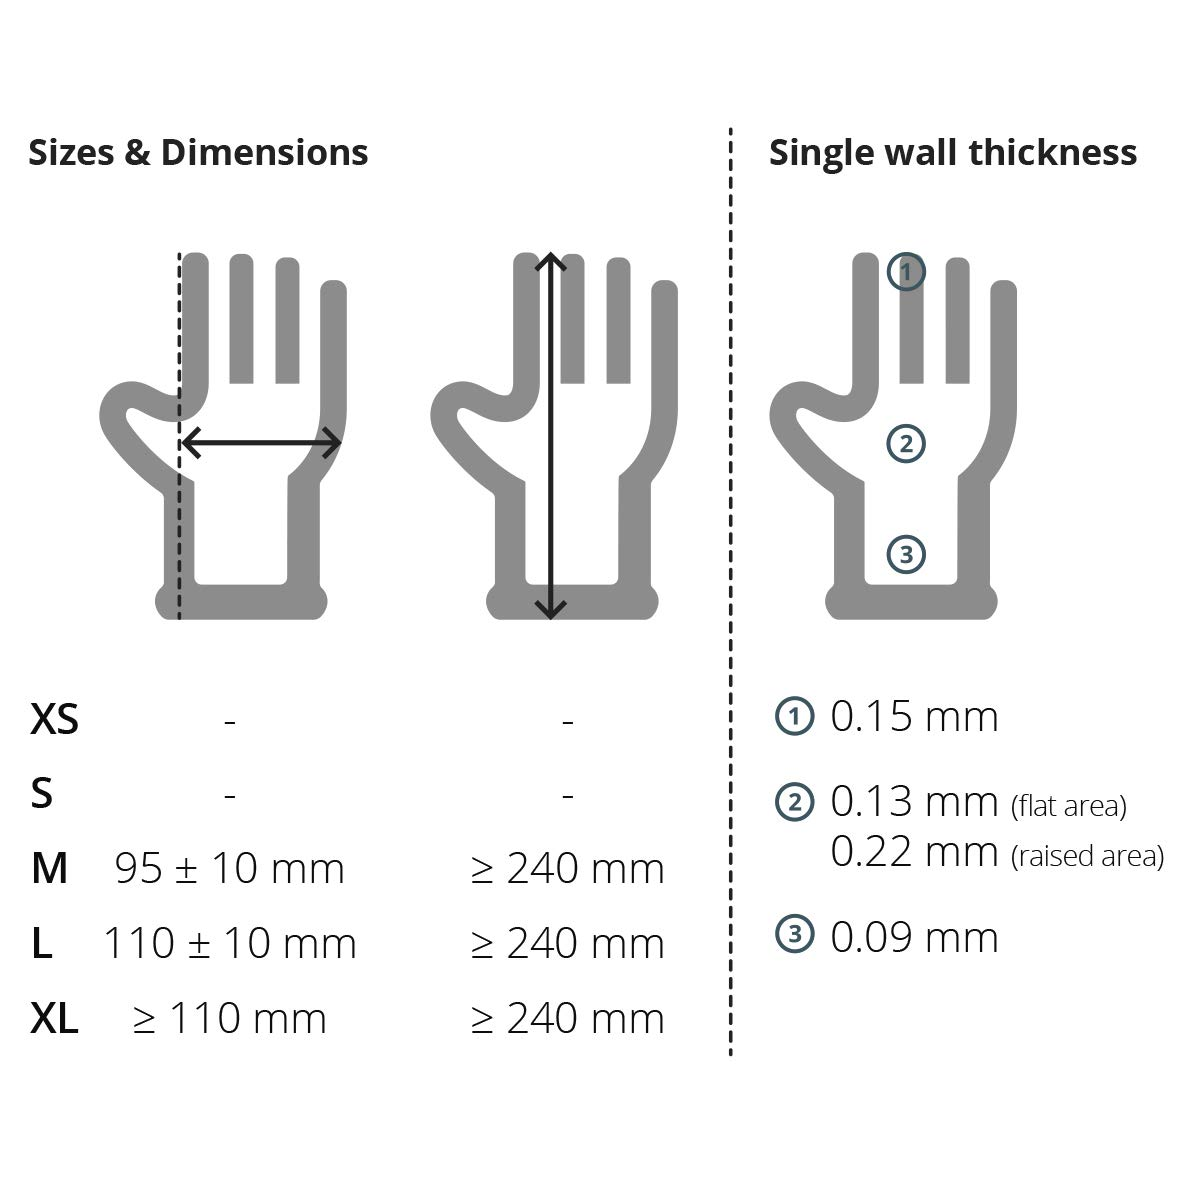 Unigloves PRO.TECT GA0052 Diamond Grip Nitrile Examination Gloves Set of 100 Small